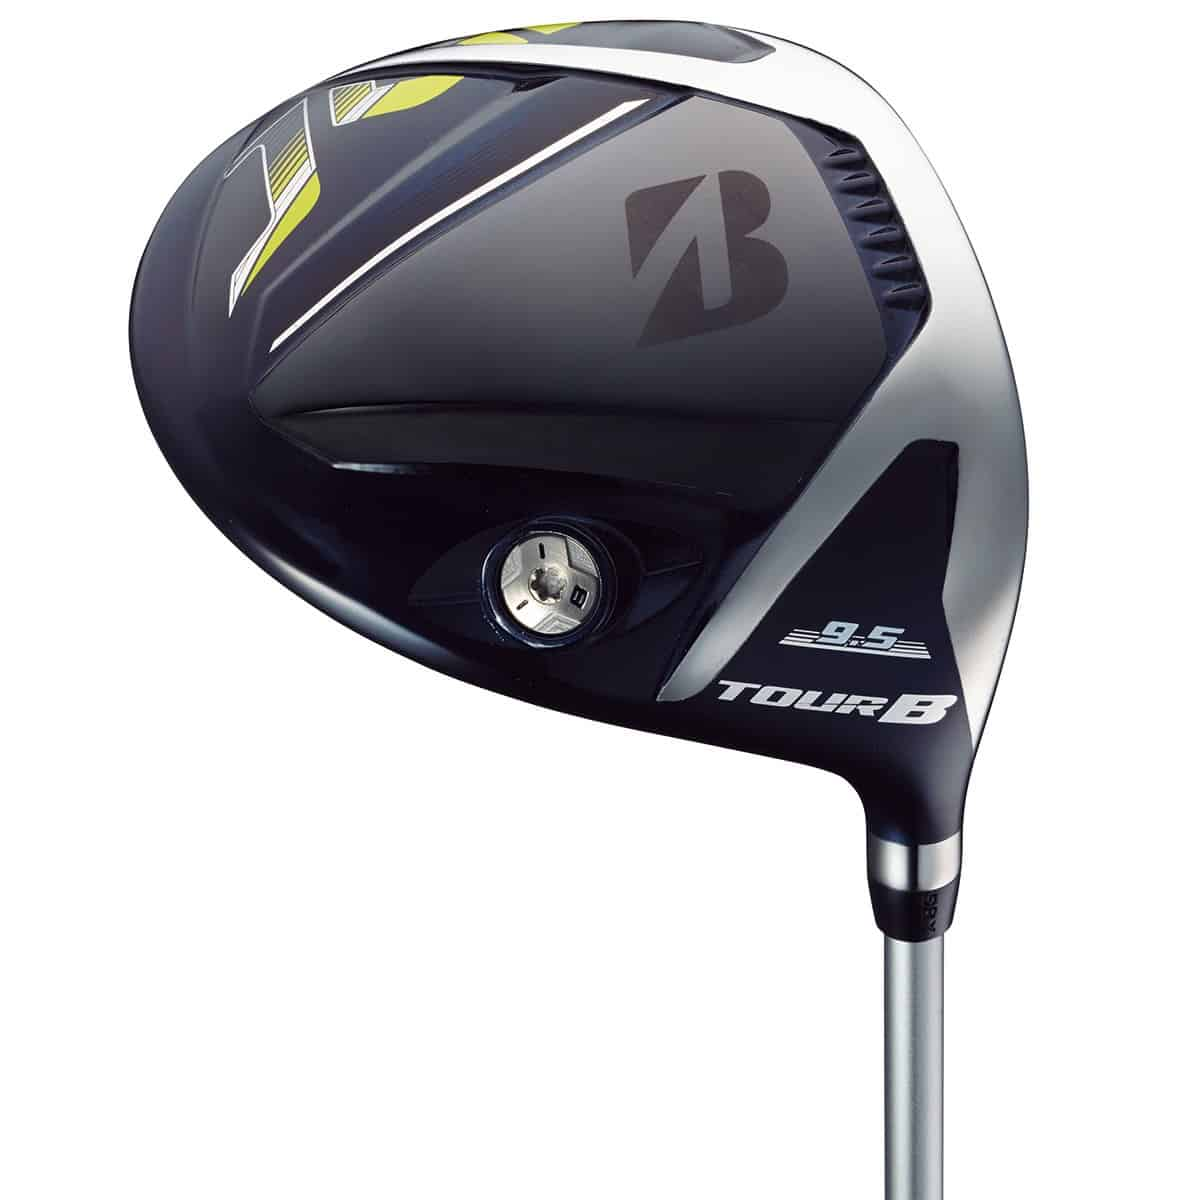 The Tour B JGR Driver by Bridgestone Golf with a white background